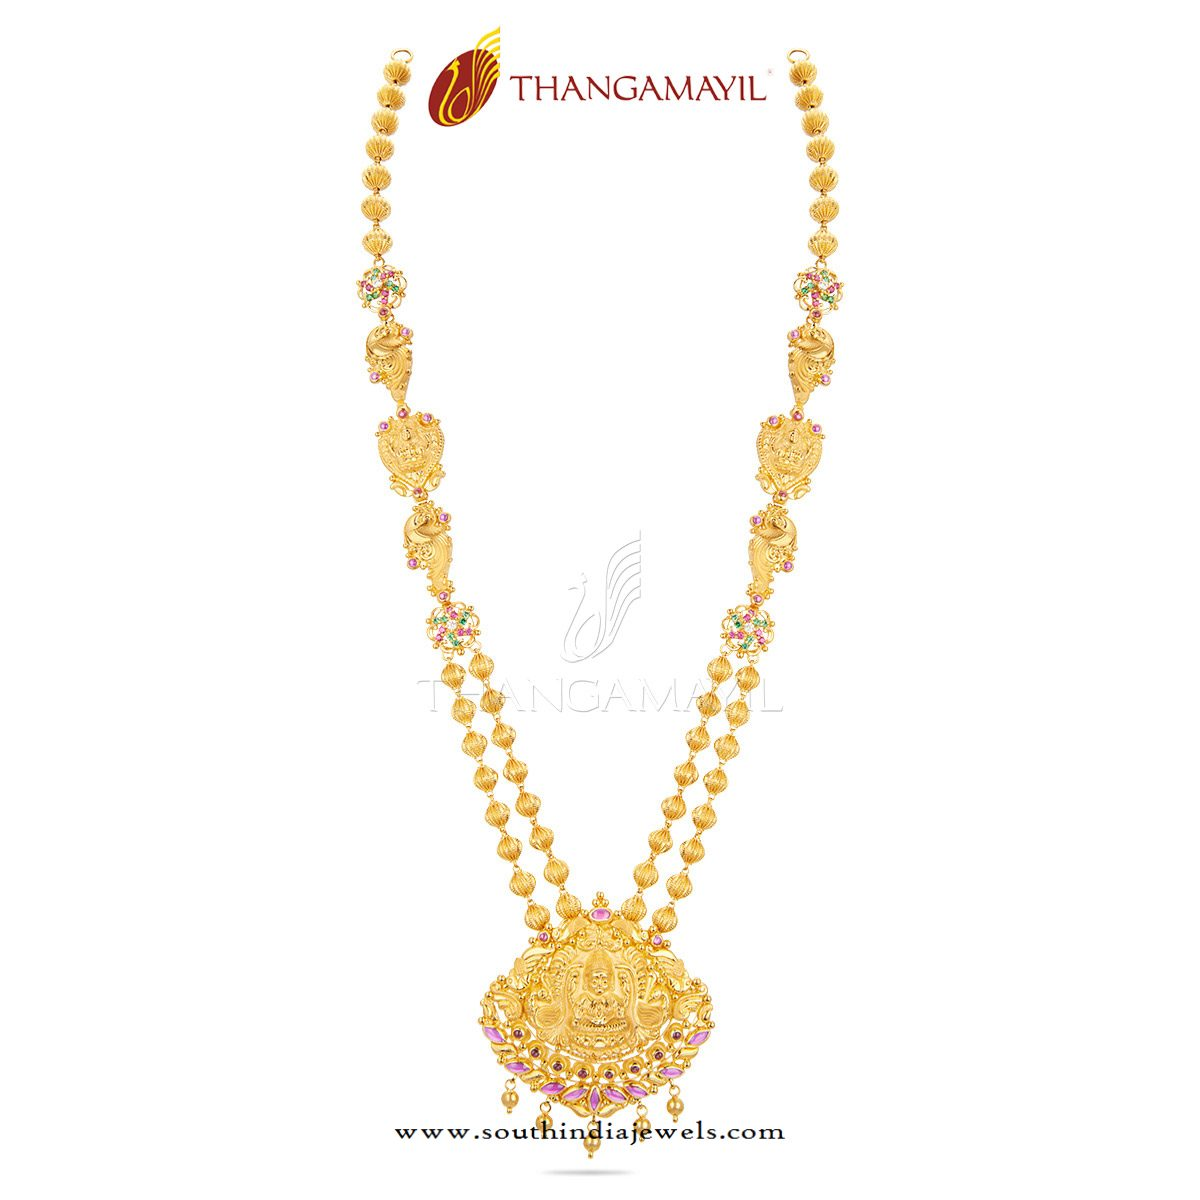 Gold Long Necklace From Thangamayil Jewellery South